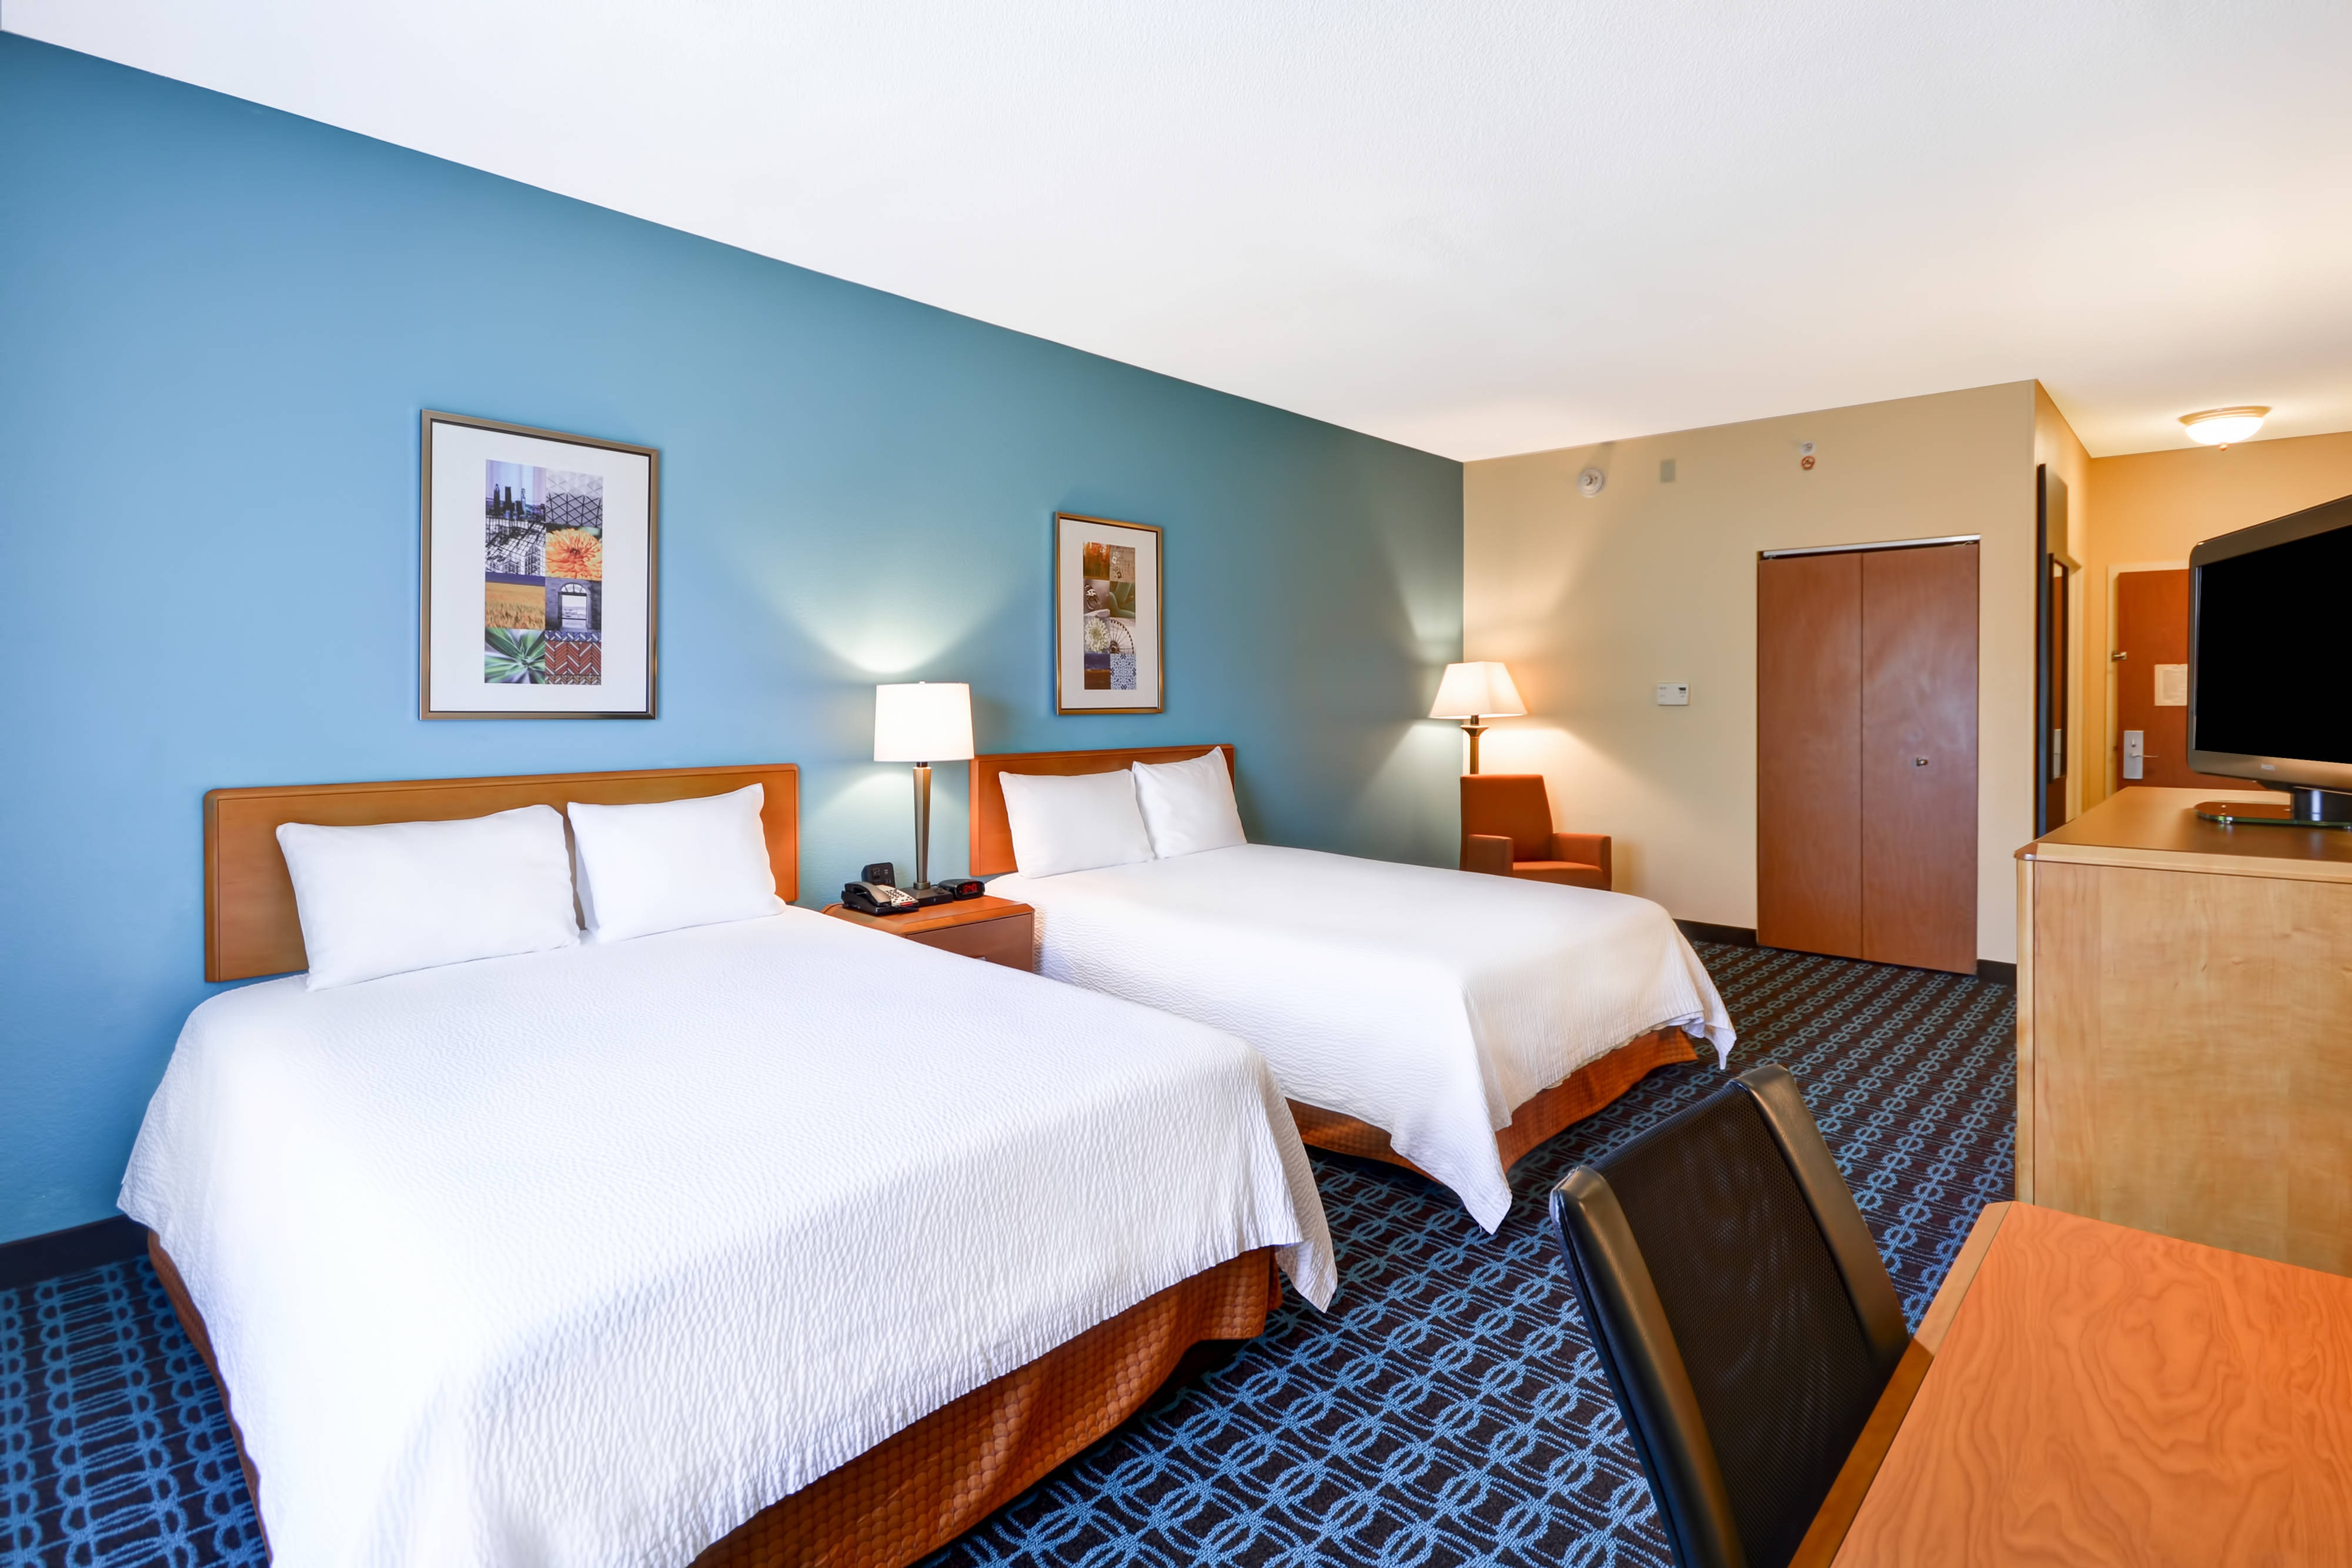 Hotel in Fultondale, AL, near I-65 | Fairfield Inn & Suites